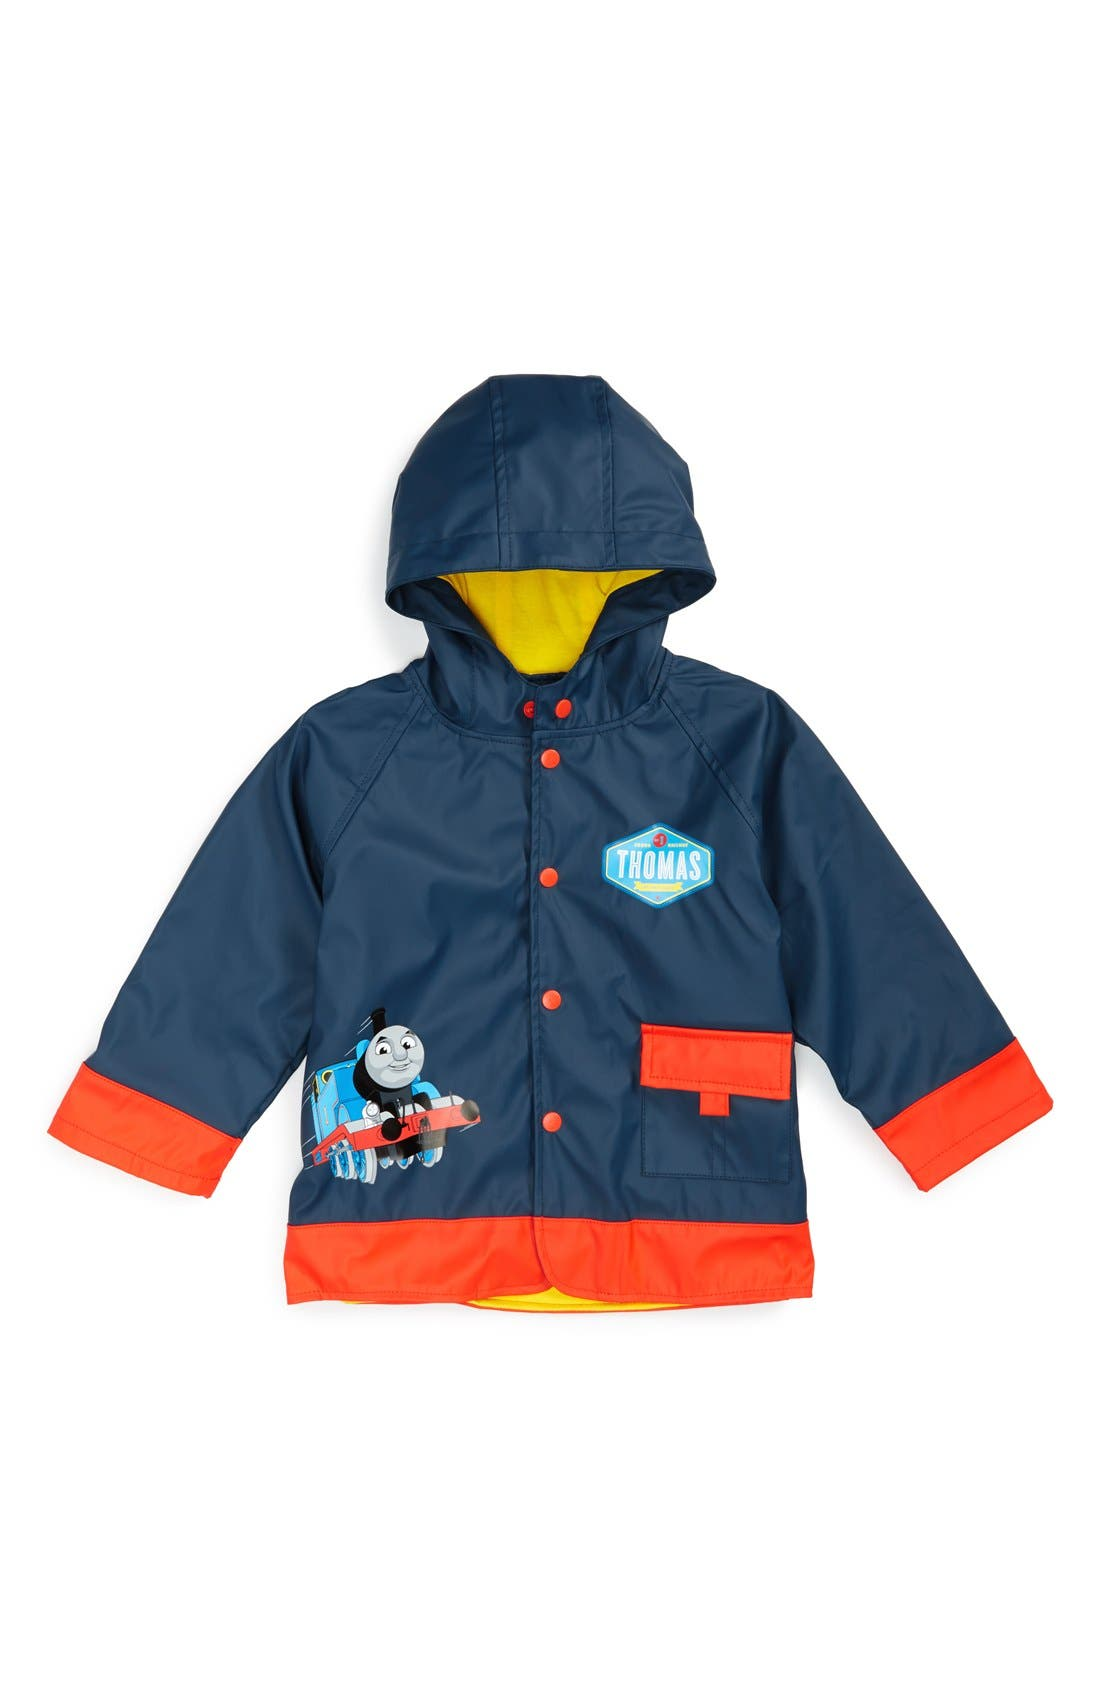 'Thomas the Tank Engine' Raincoat,                             Main thumbnail 1, color,                             421